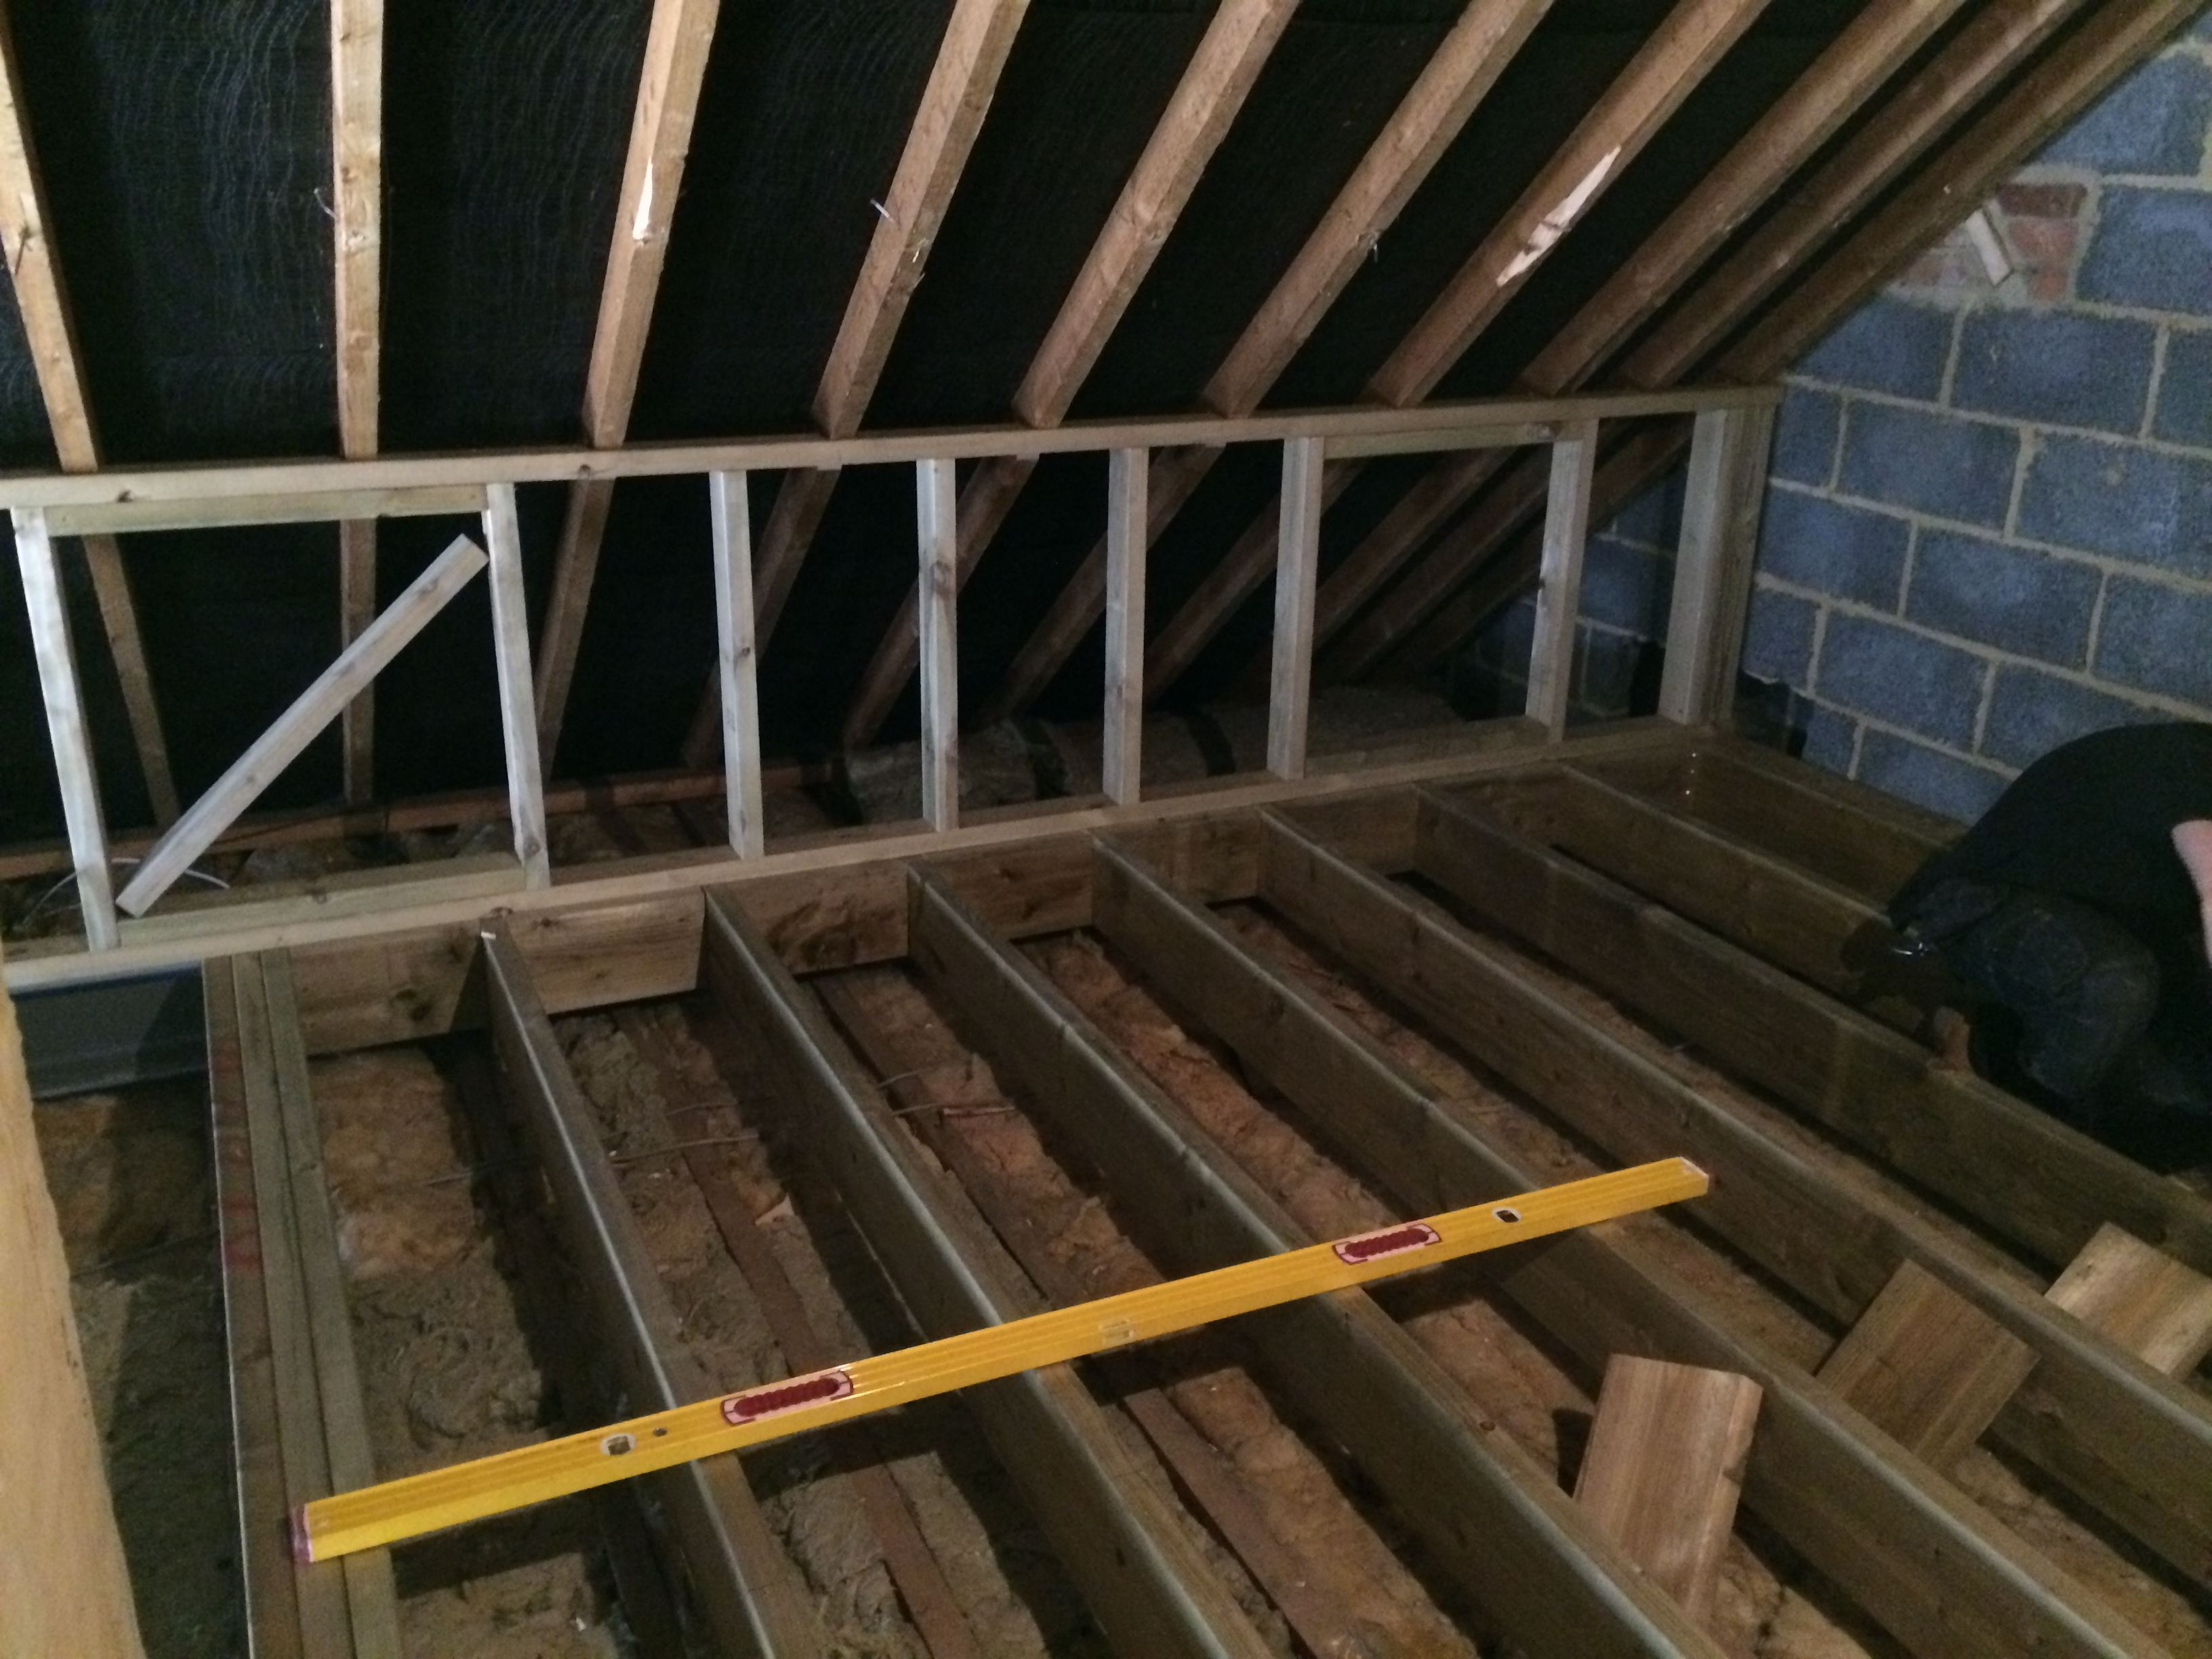 attic conversion storage ideas - Rear Dormer SkyLofts